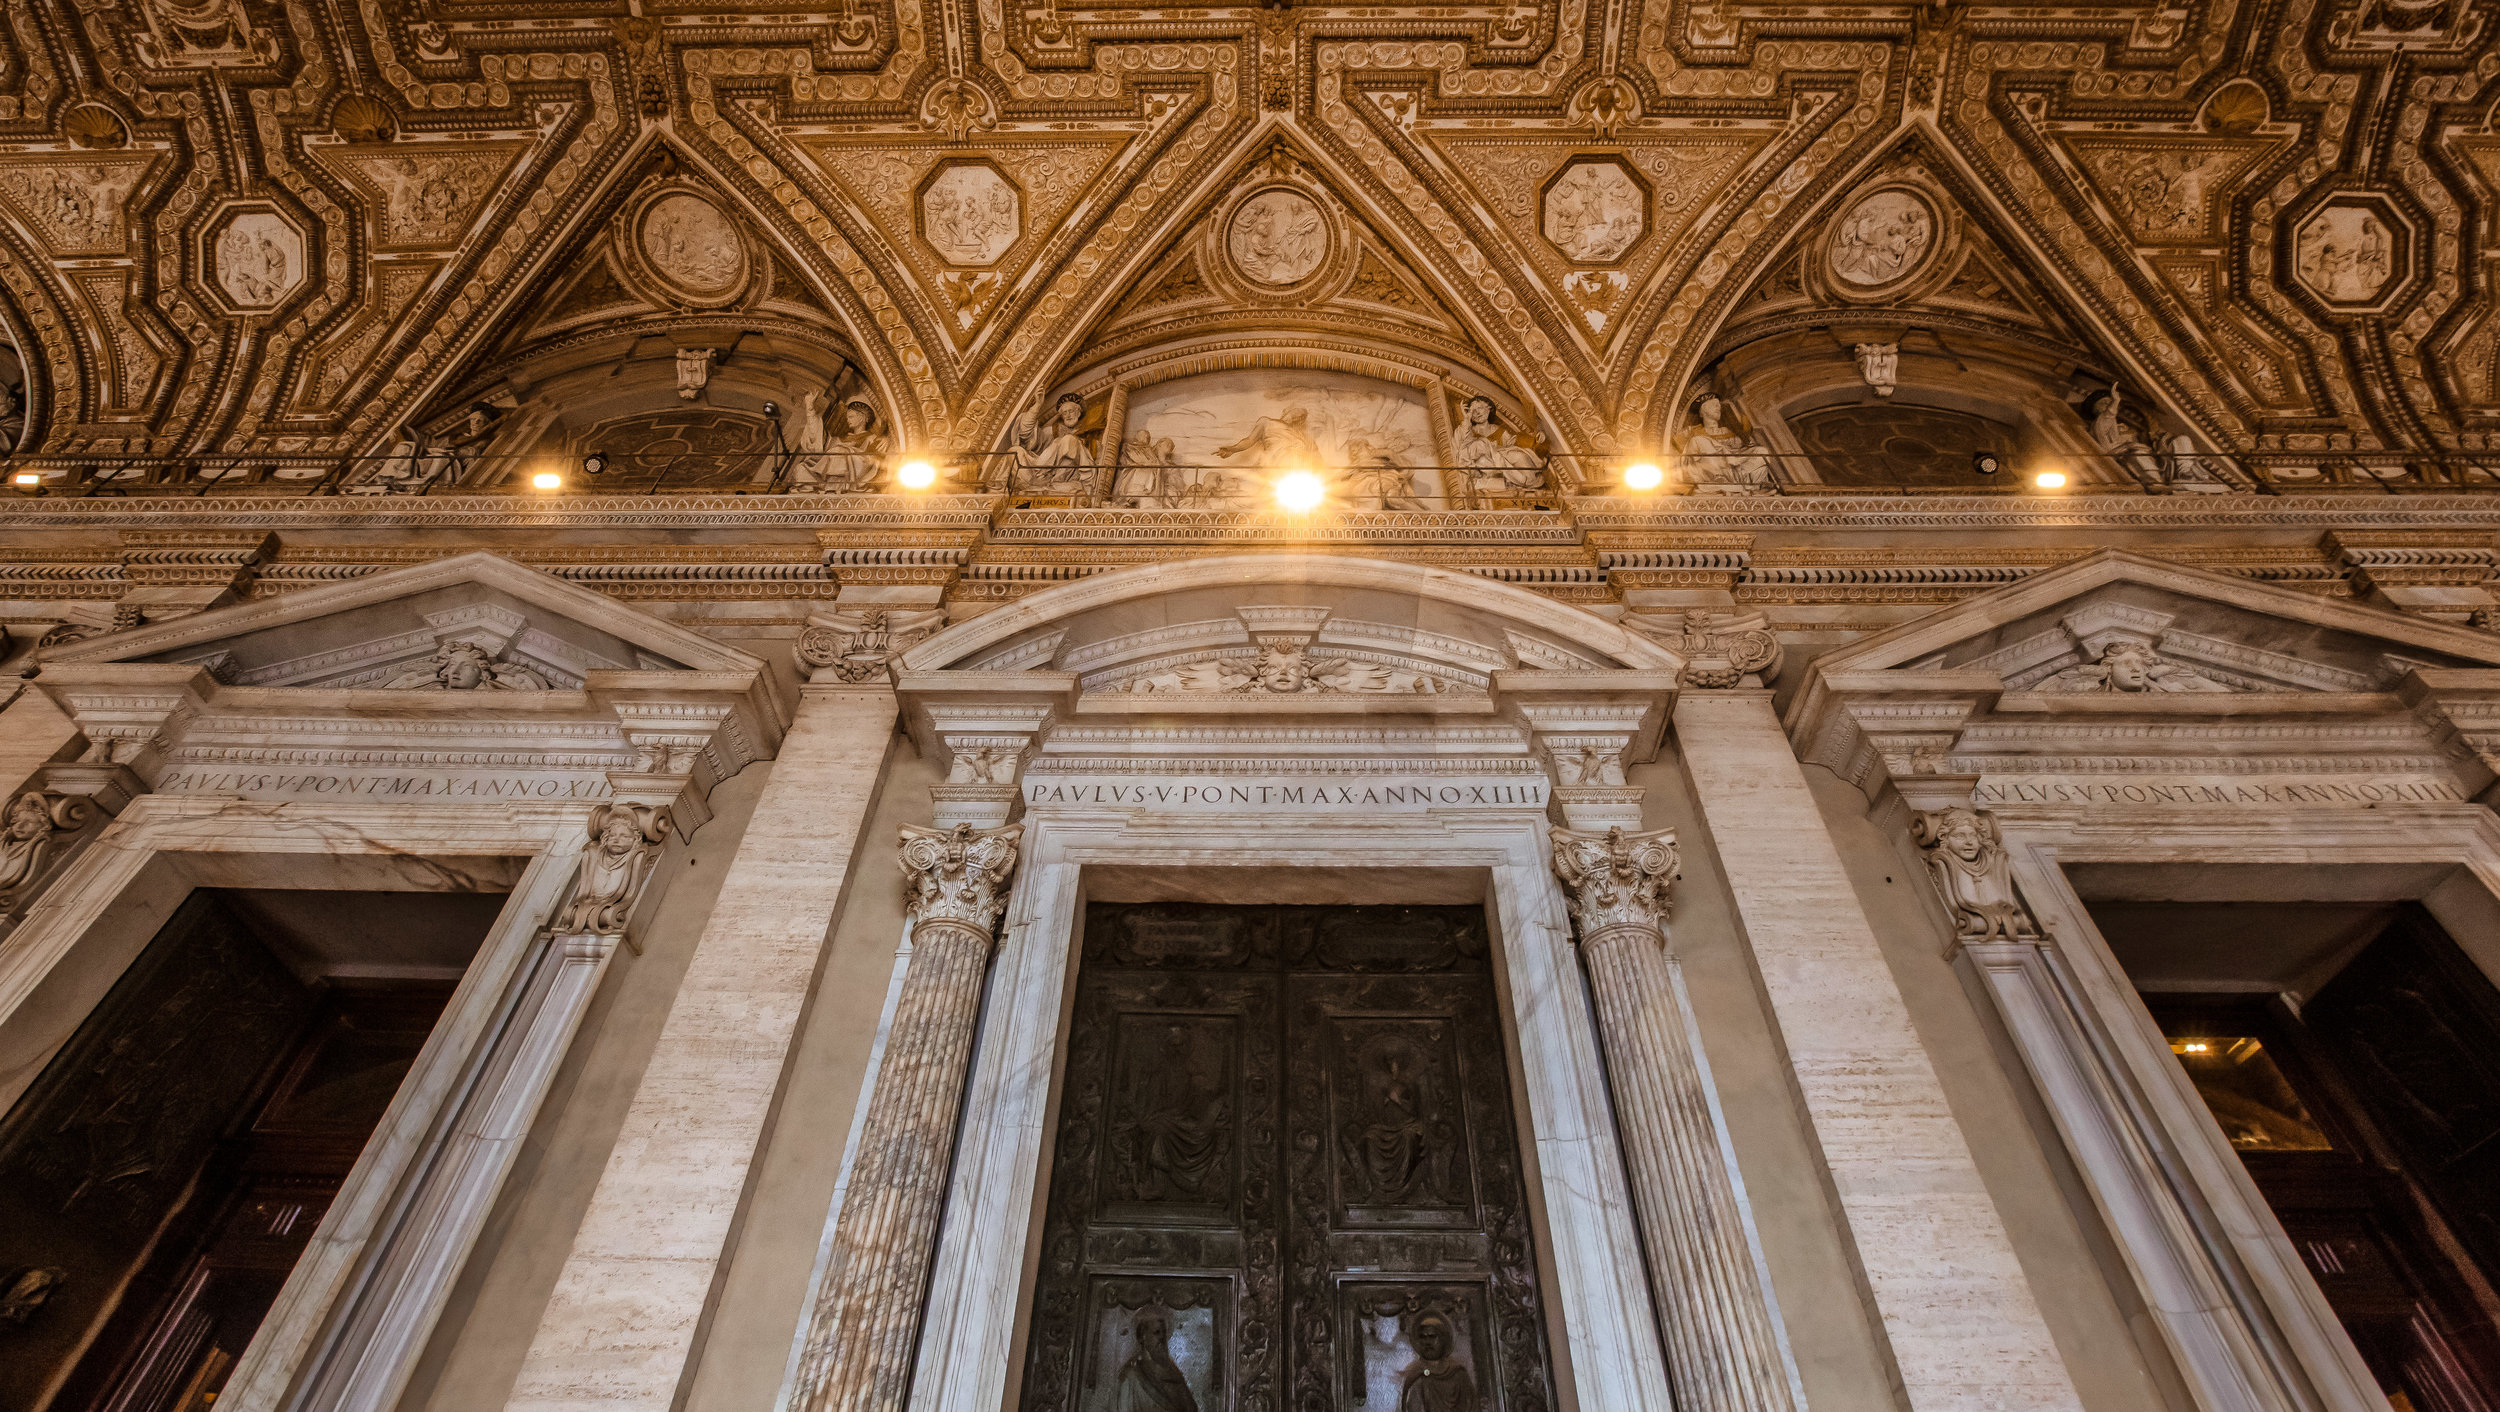 The inside doors to St. Peter's